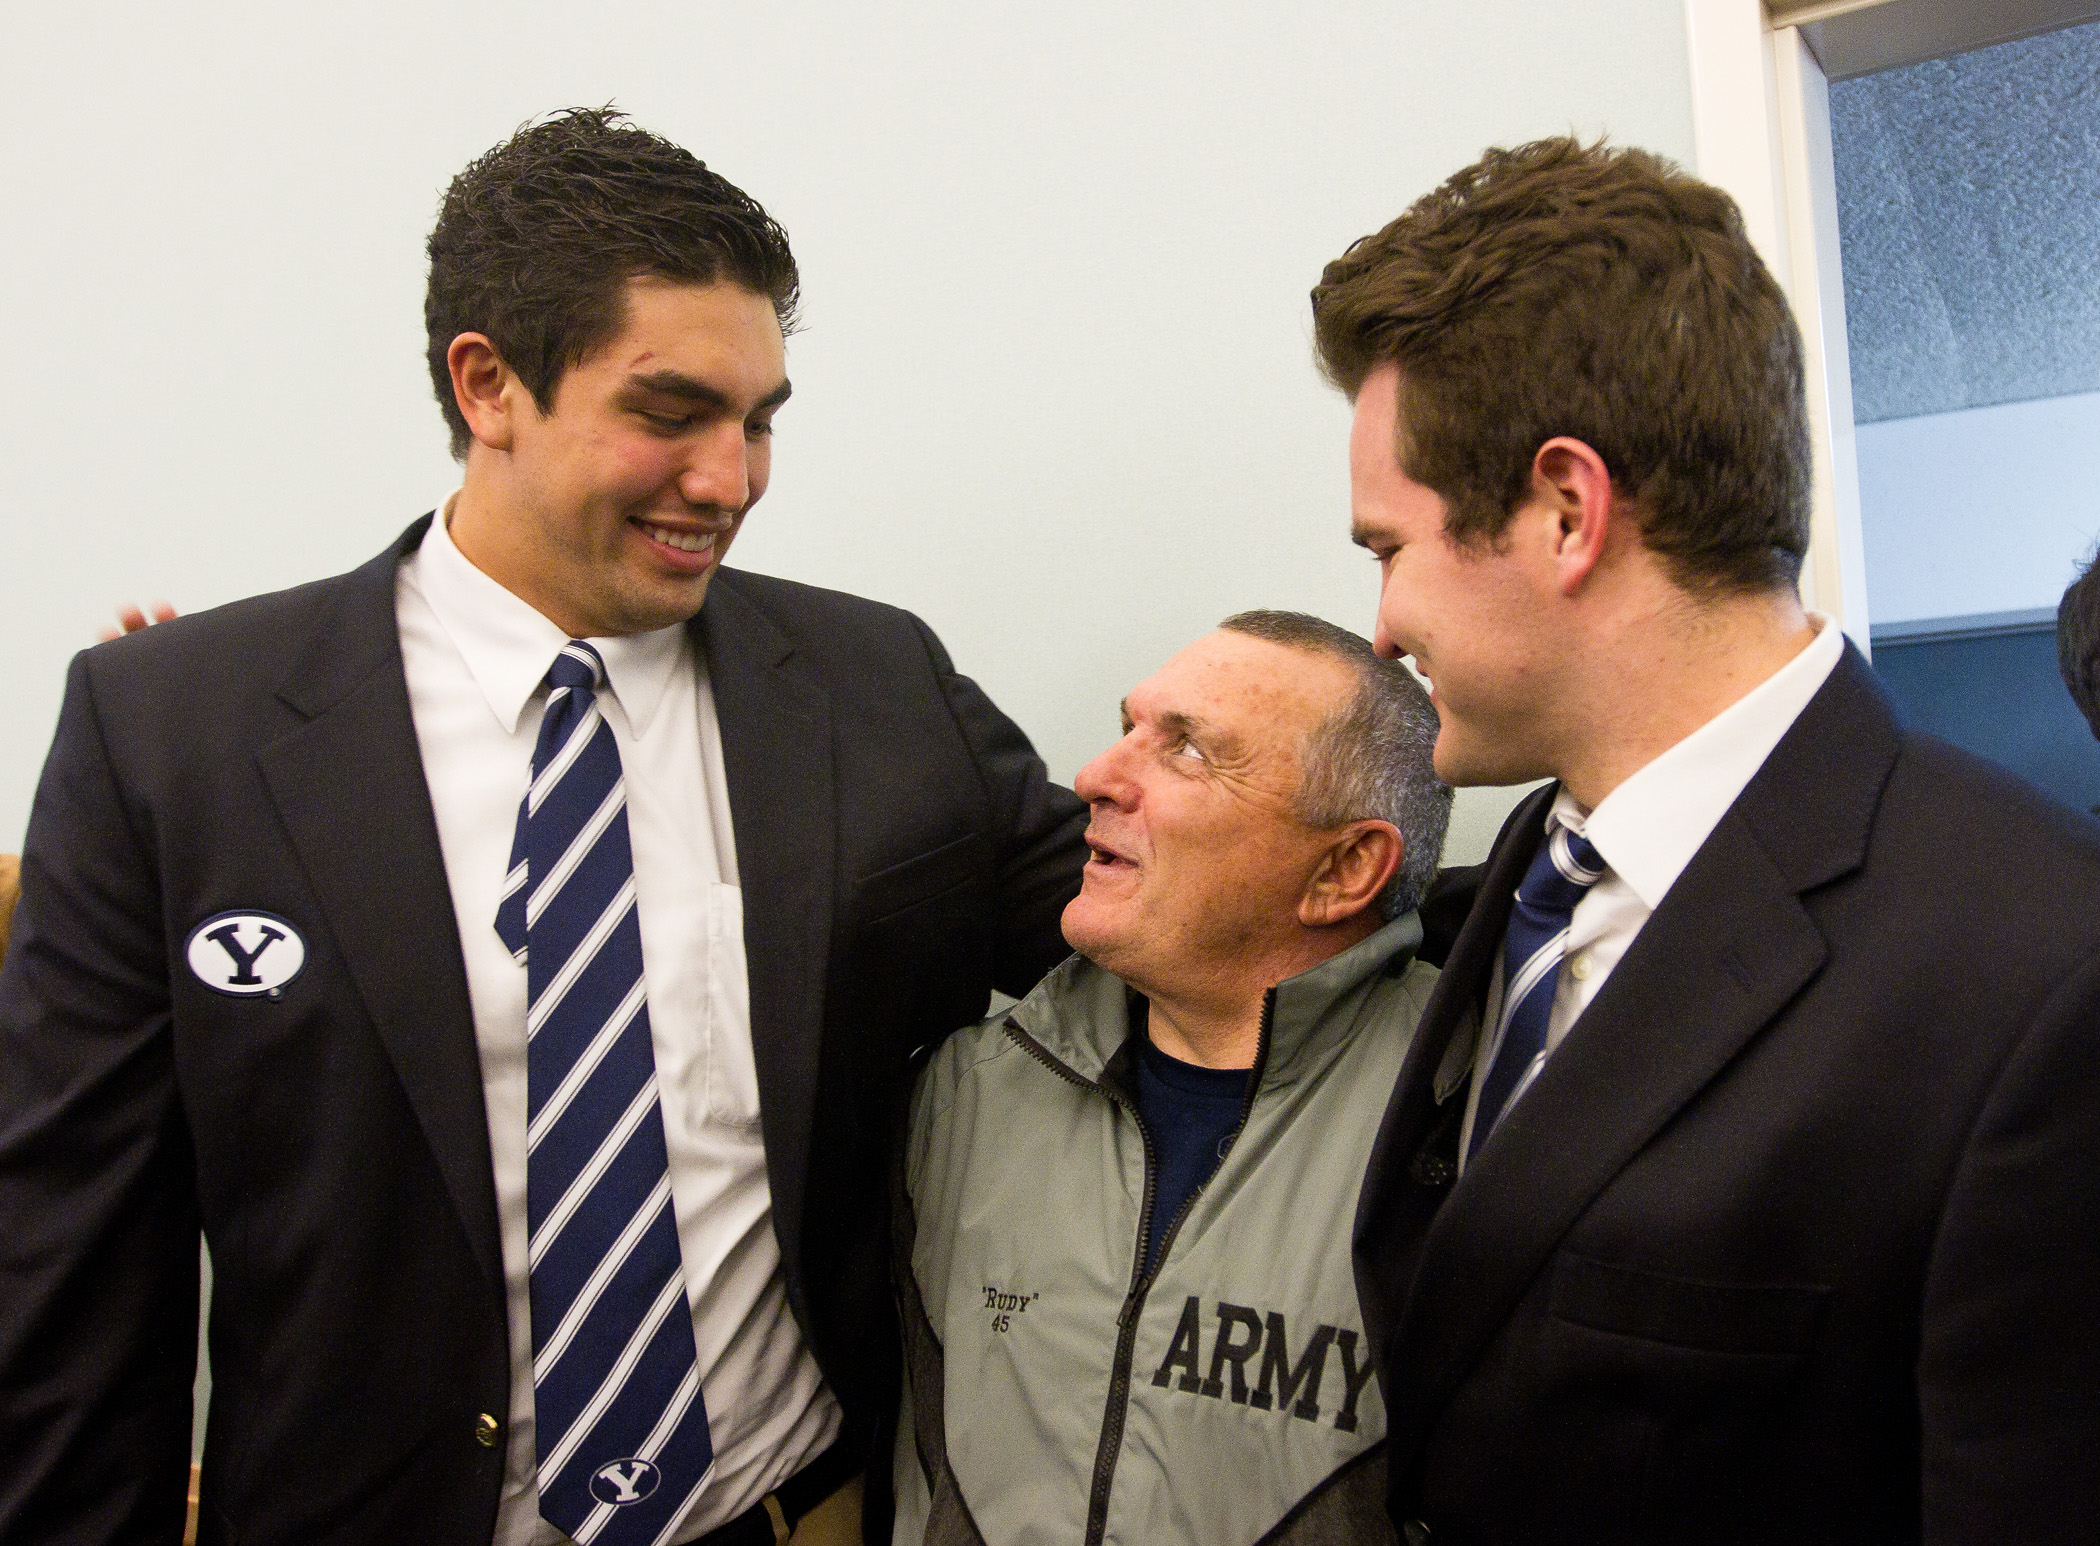 BYU football players Bronson Kaufusi and Skye Povey talk with Notre Dame legend Rudy Ruettiger at the team's traditional pregame fireside Friday, Nov. 22, 2013. (Photo by Sarah Hill)